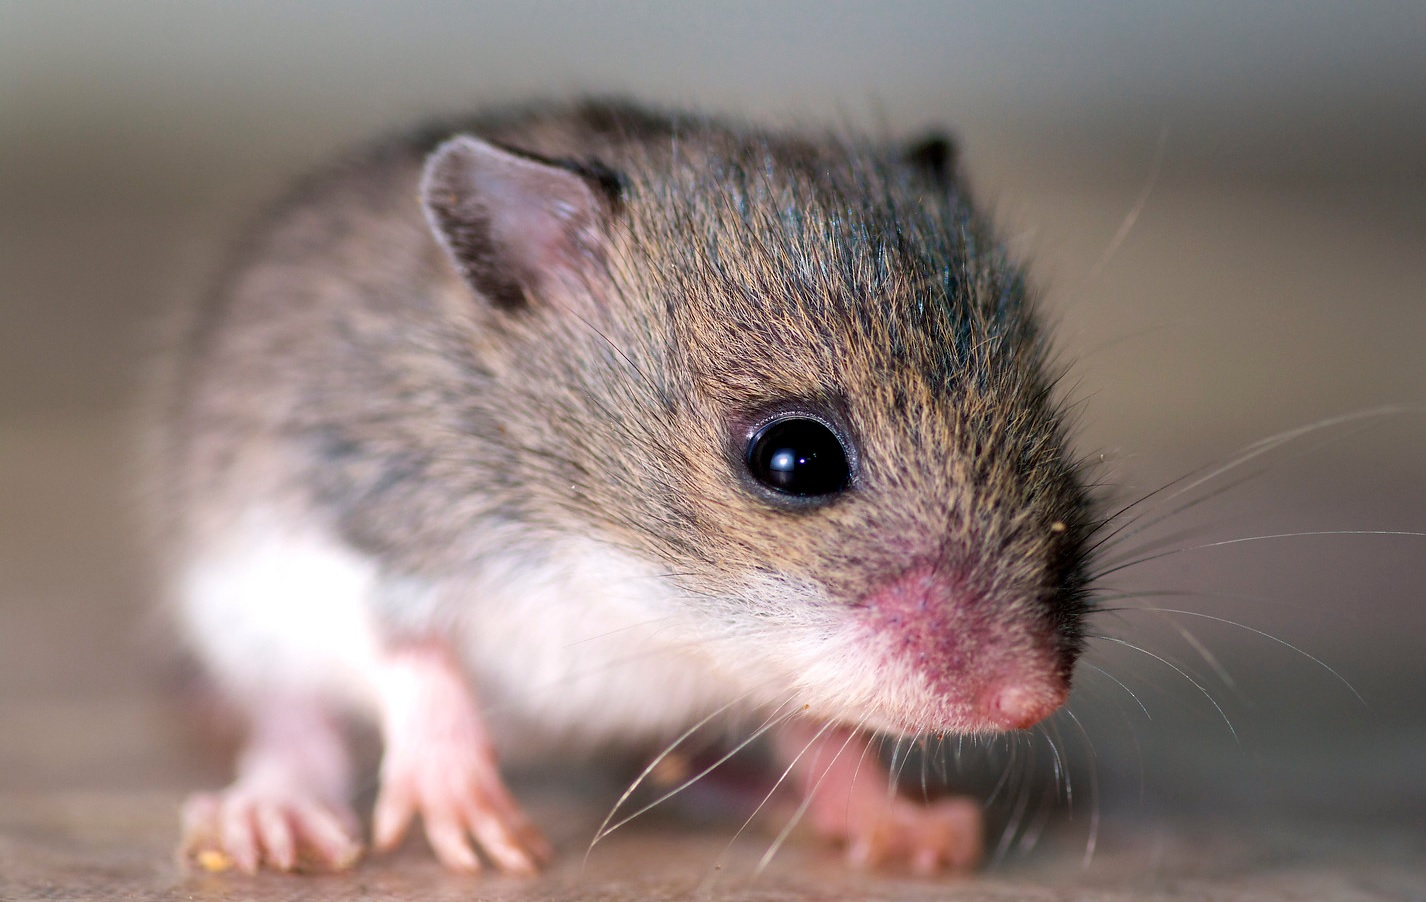 A young mouse